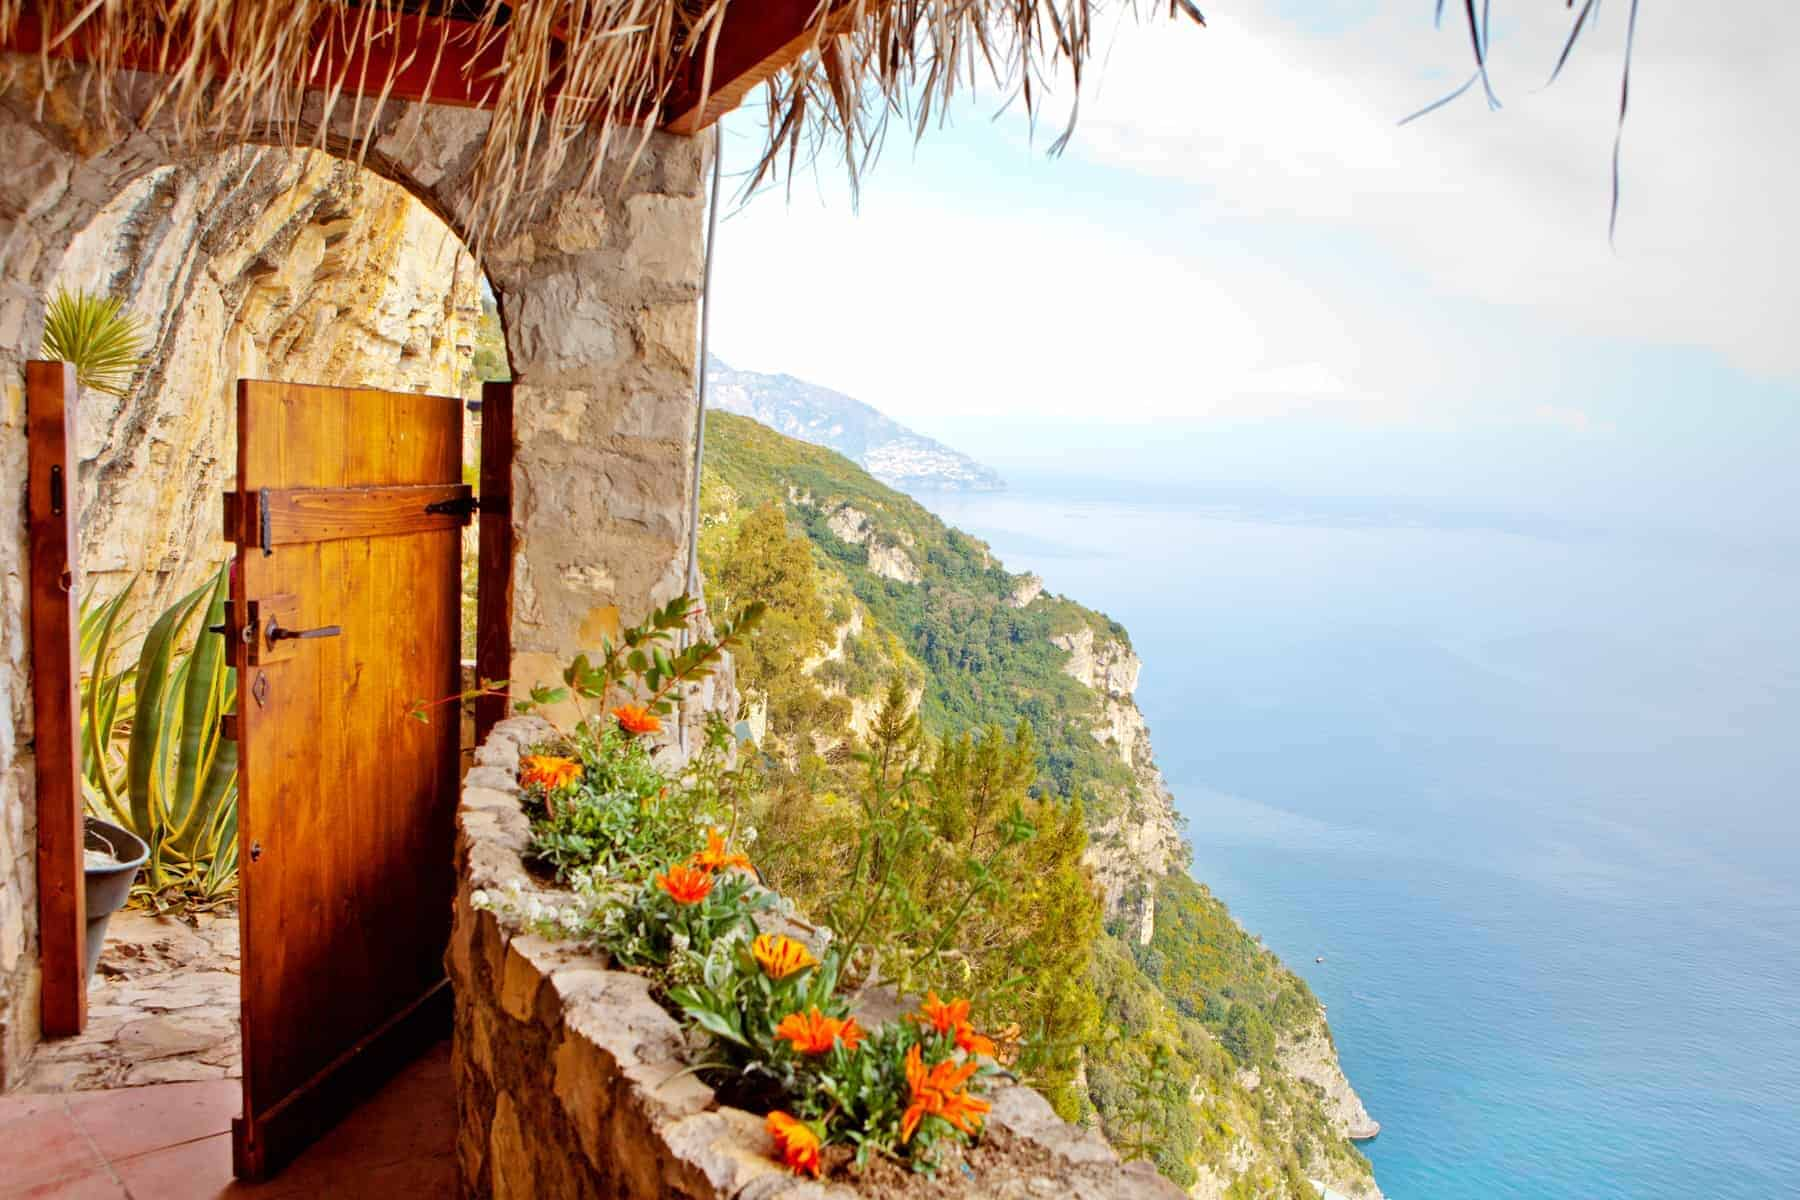 A wooden door leading to a path along a steep cliff on the Mediterranian Sea